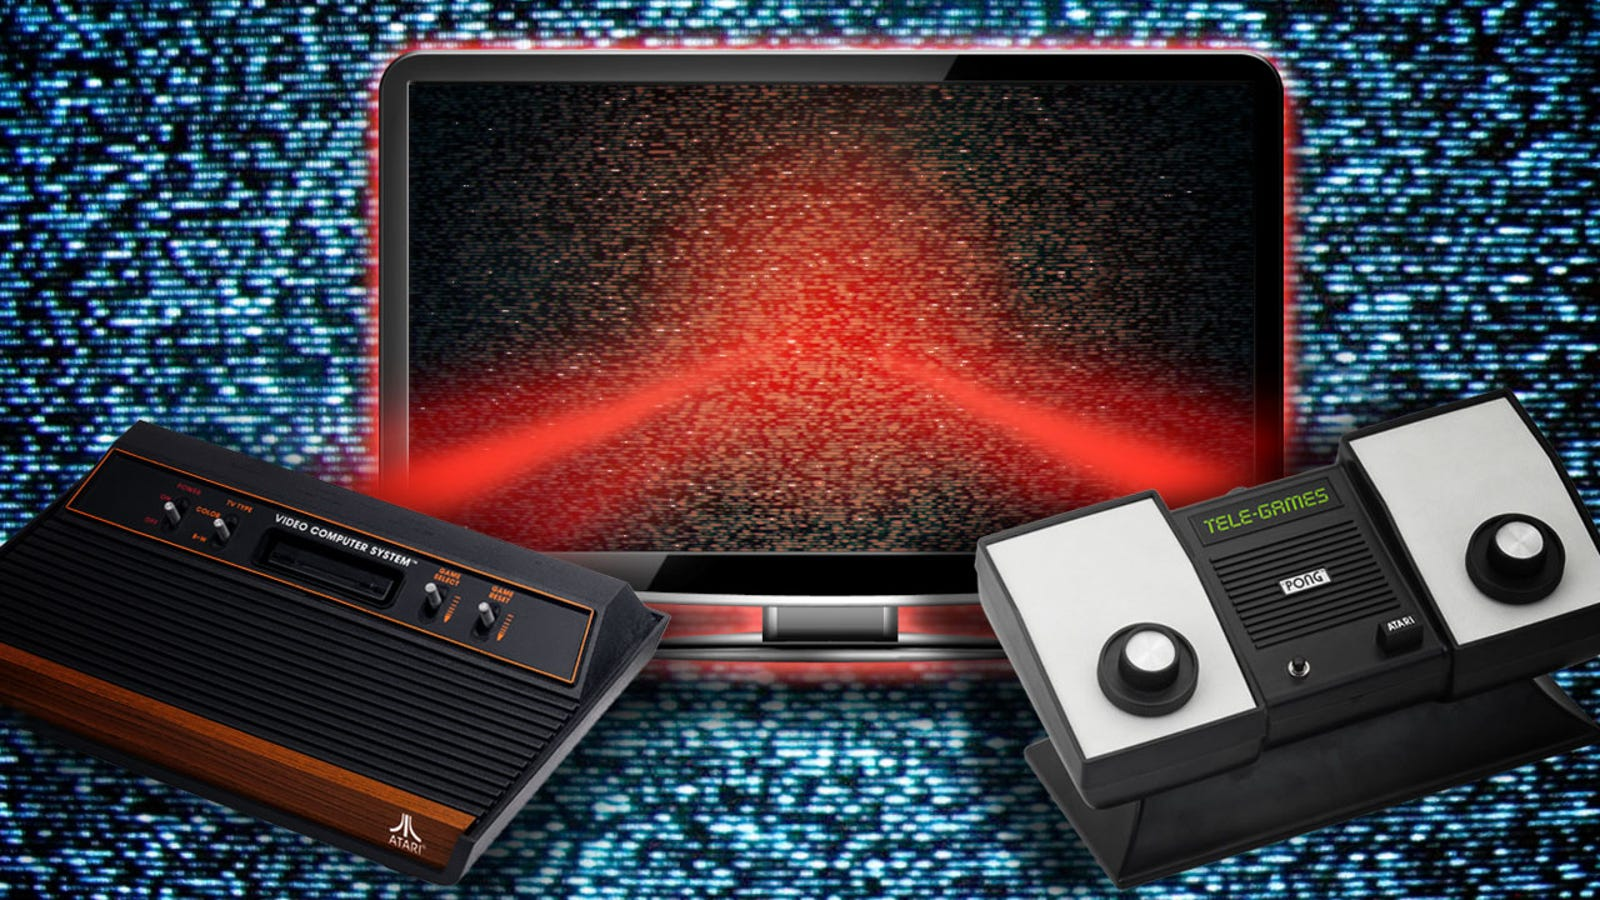 How to Connect Your Old School Video Game Consoles to a New TV